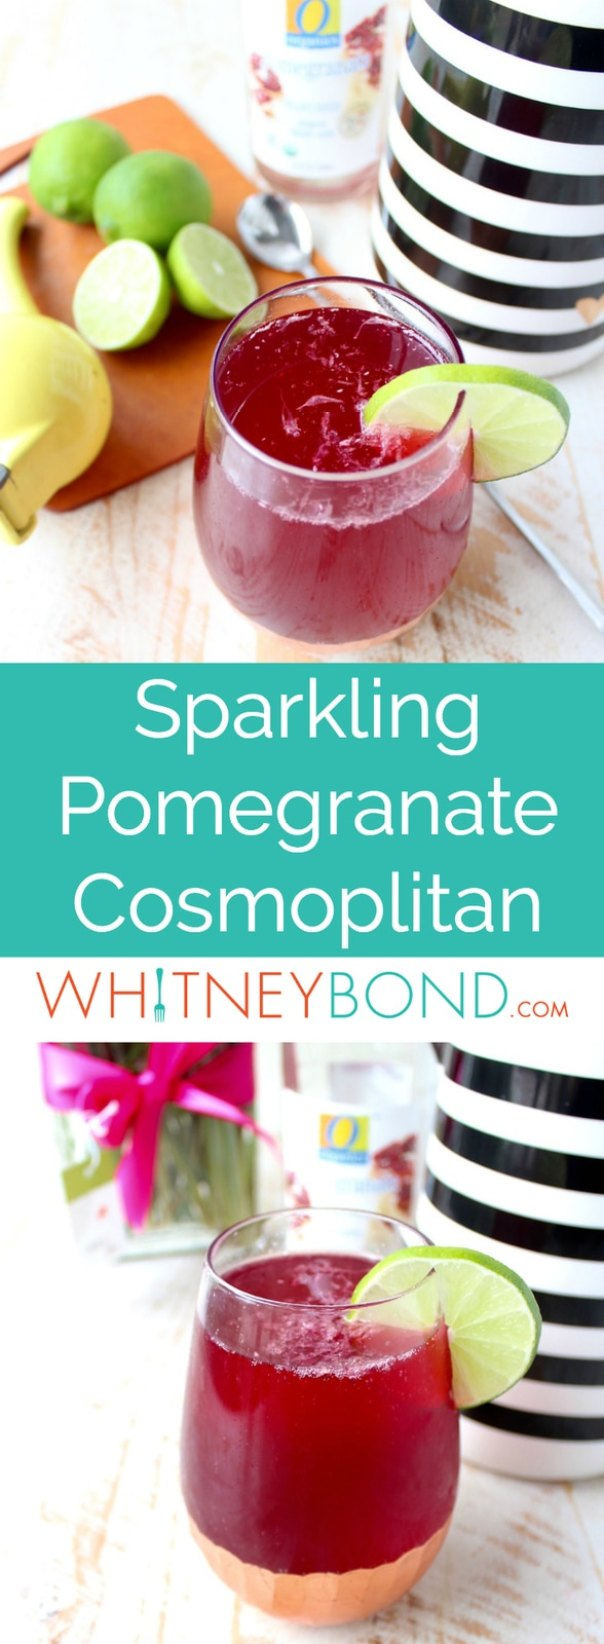 Sparkling pomegranate soda replaces cranberry juice in this bubbly twist on a traditional cosmopolitan cocktail, topped with champagne, perfect for parties or happy hour any day!